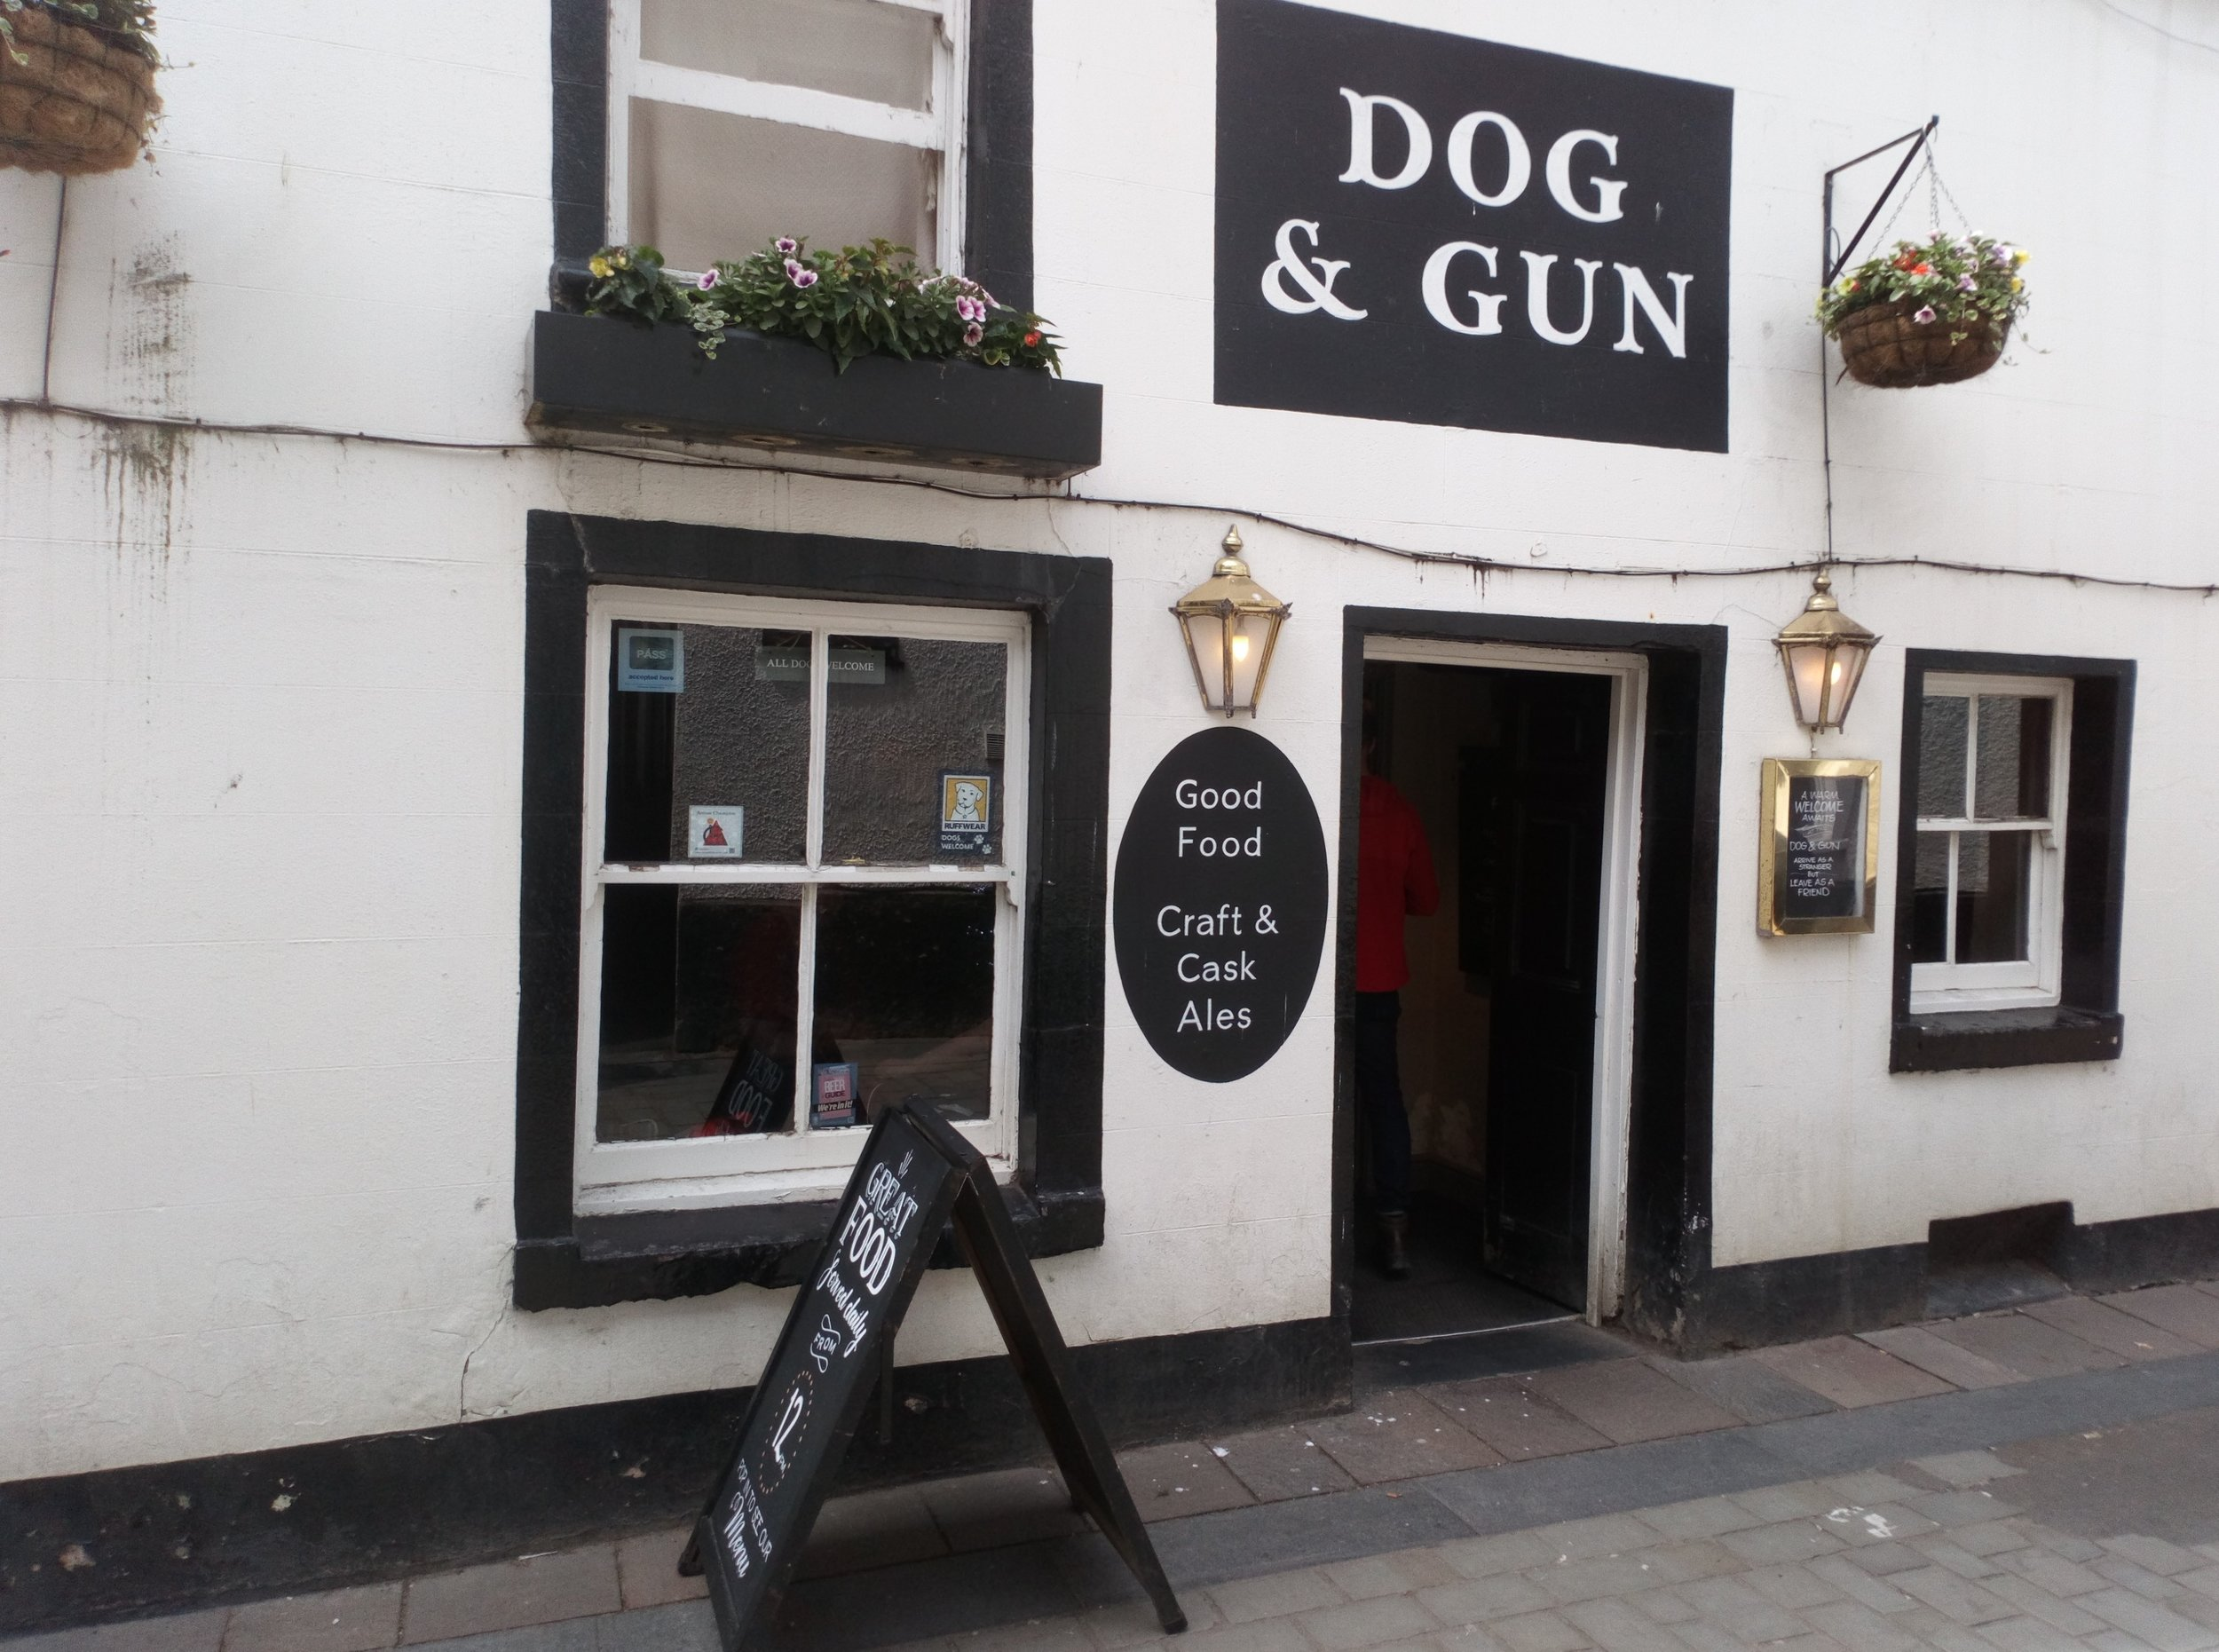 Dog & Gun    The Dog & Gun is one of Keswick's best-known pubs. It serves a selection of real ales and a menu to suit every taste. We are family friendly and provide a laid back and enjoyable environment to savour our real ales sourced within Cumbria and further afield. A weekly pub quiz gives you the chance to test your knowledge or just sit back and relax in our outdoor beer garden.  2 Lake Road,  Keswick, CA12 5BT  017687 73463